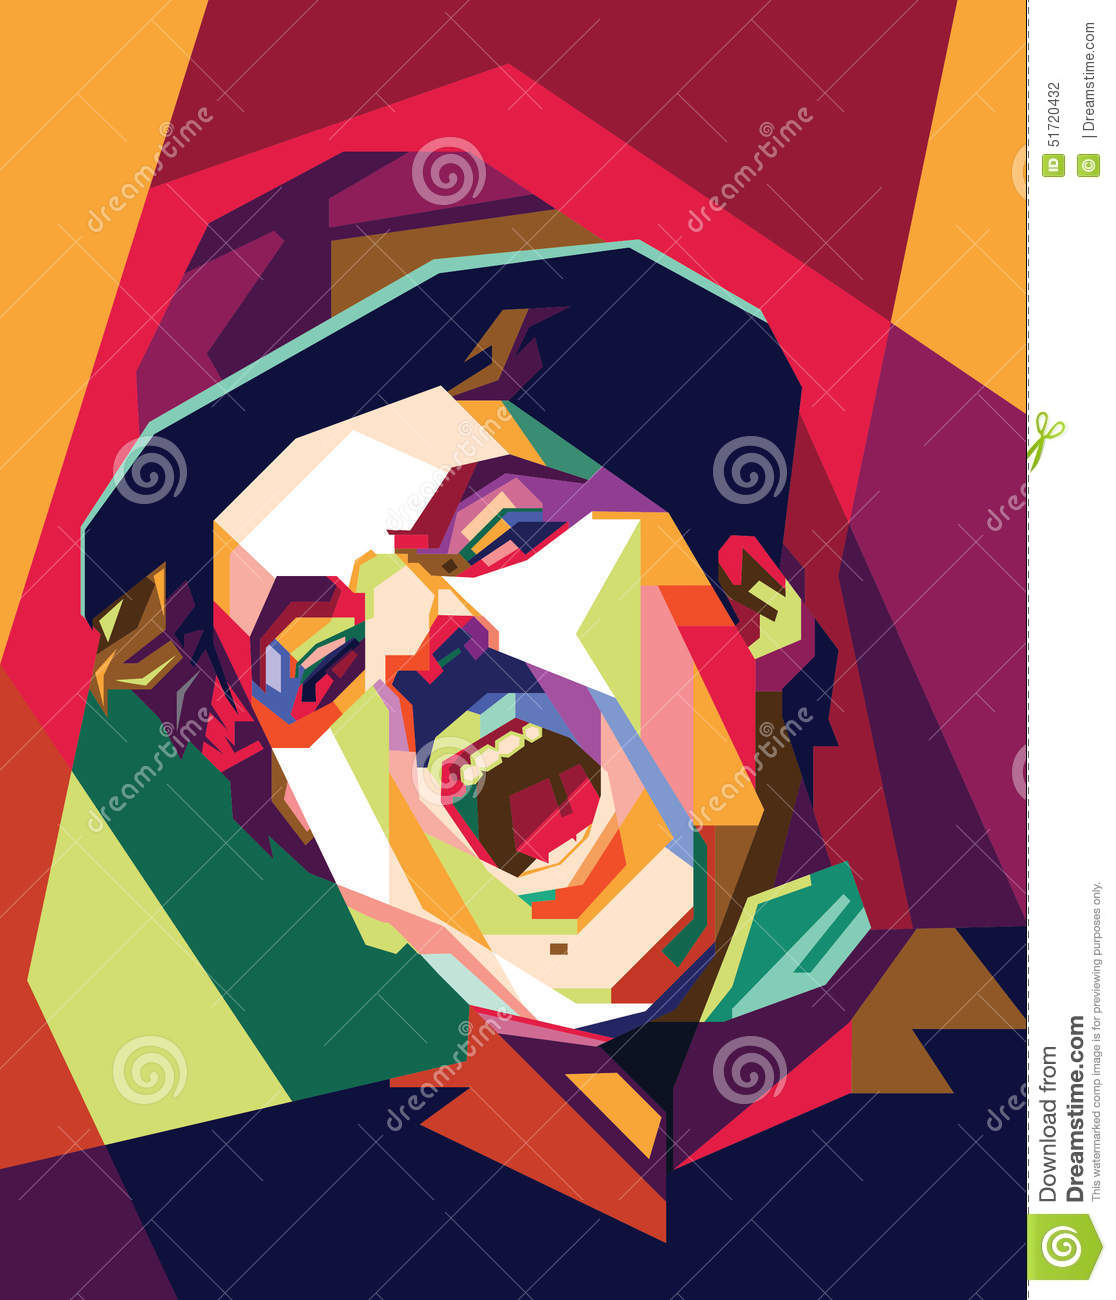 Charlie Chaplin Pop Art Editorial Photography Illustration Of Image